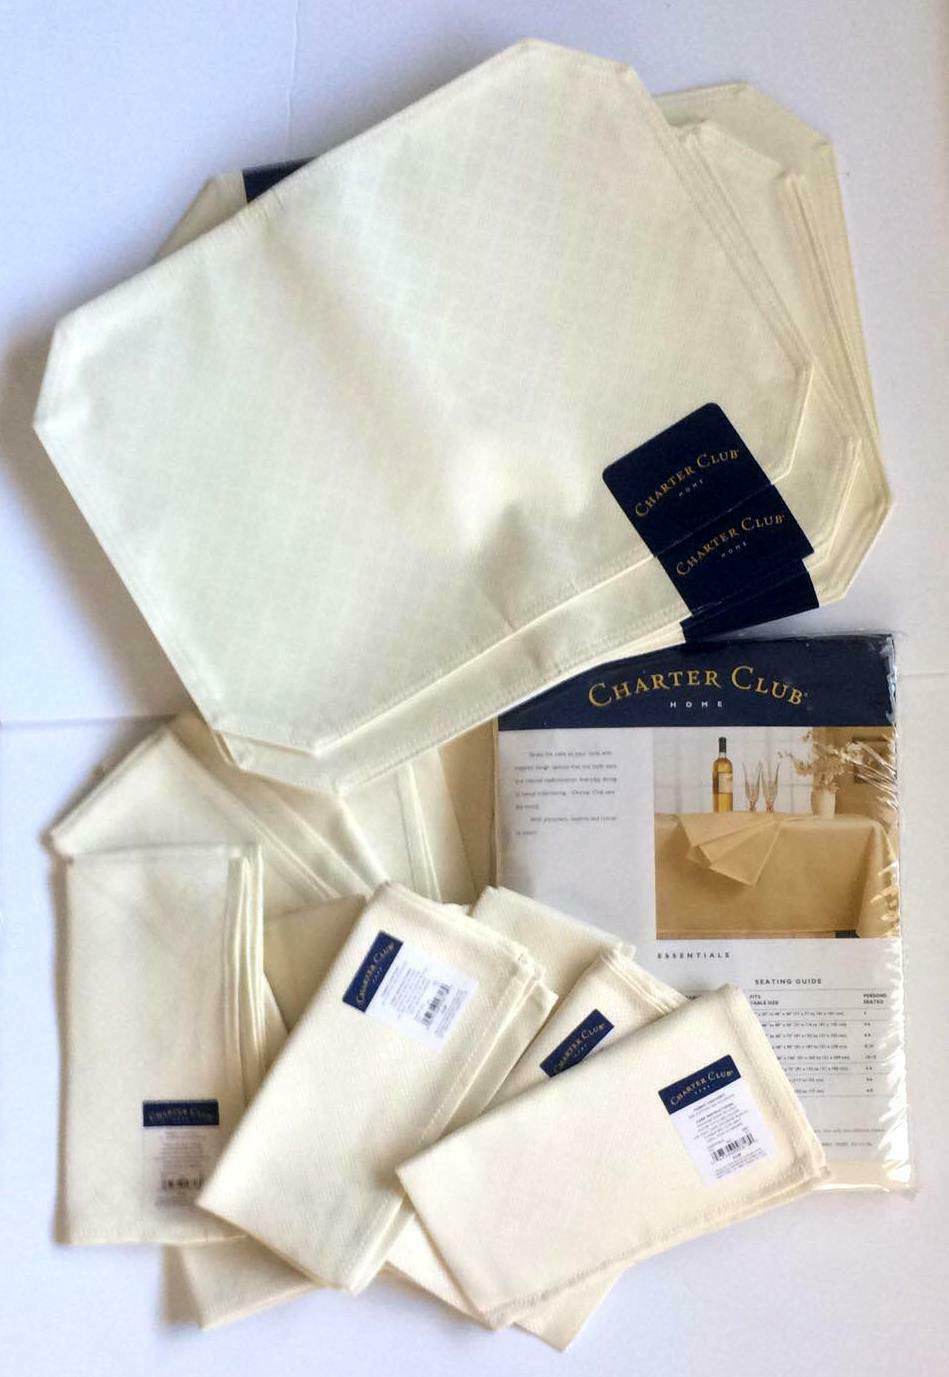 CHARTER CLUB HOME TABLECLOTH 70  X 102  OBLONG PLUS 8 PLACEMATS AND 12 NAPKINS